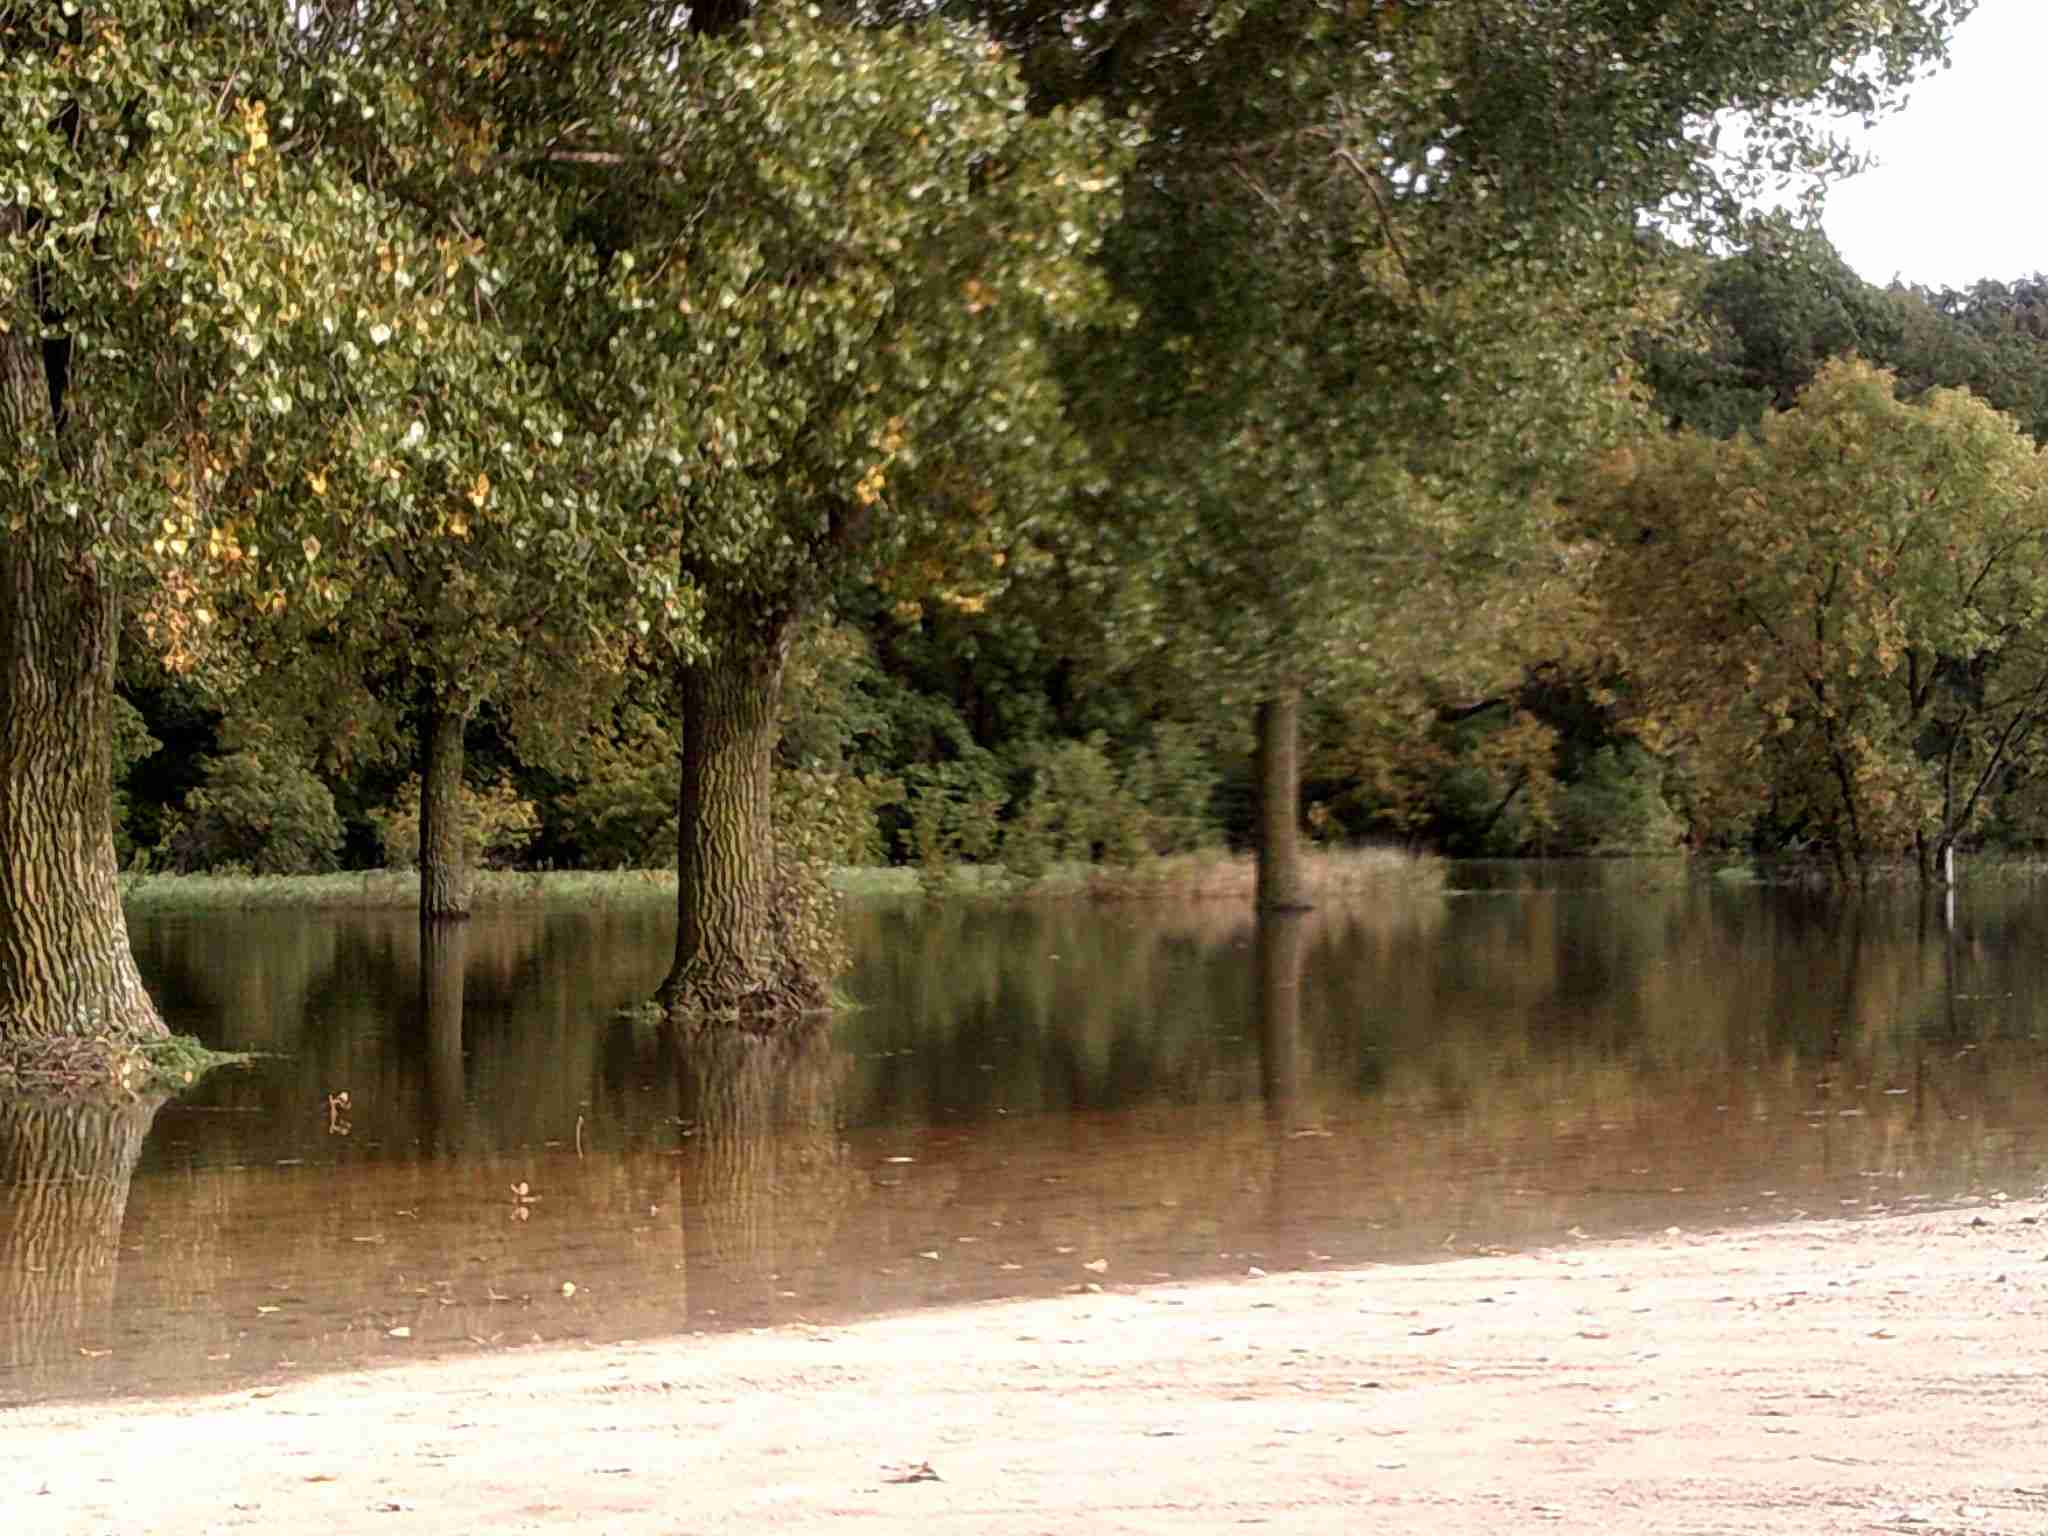 The Winnebago River is out of its banks in some locations due to the heavy rains.